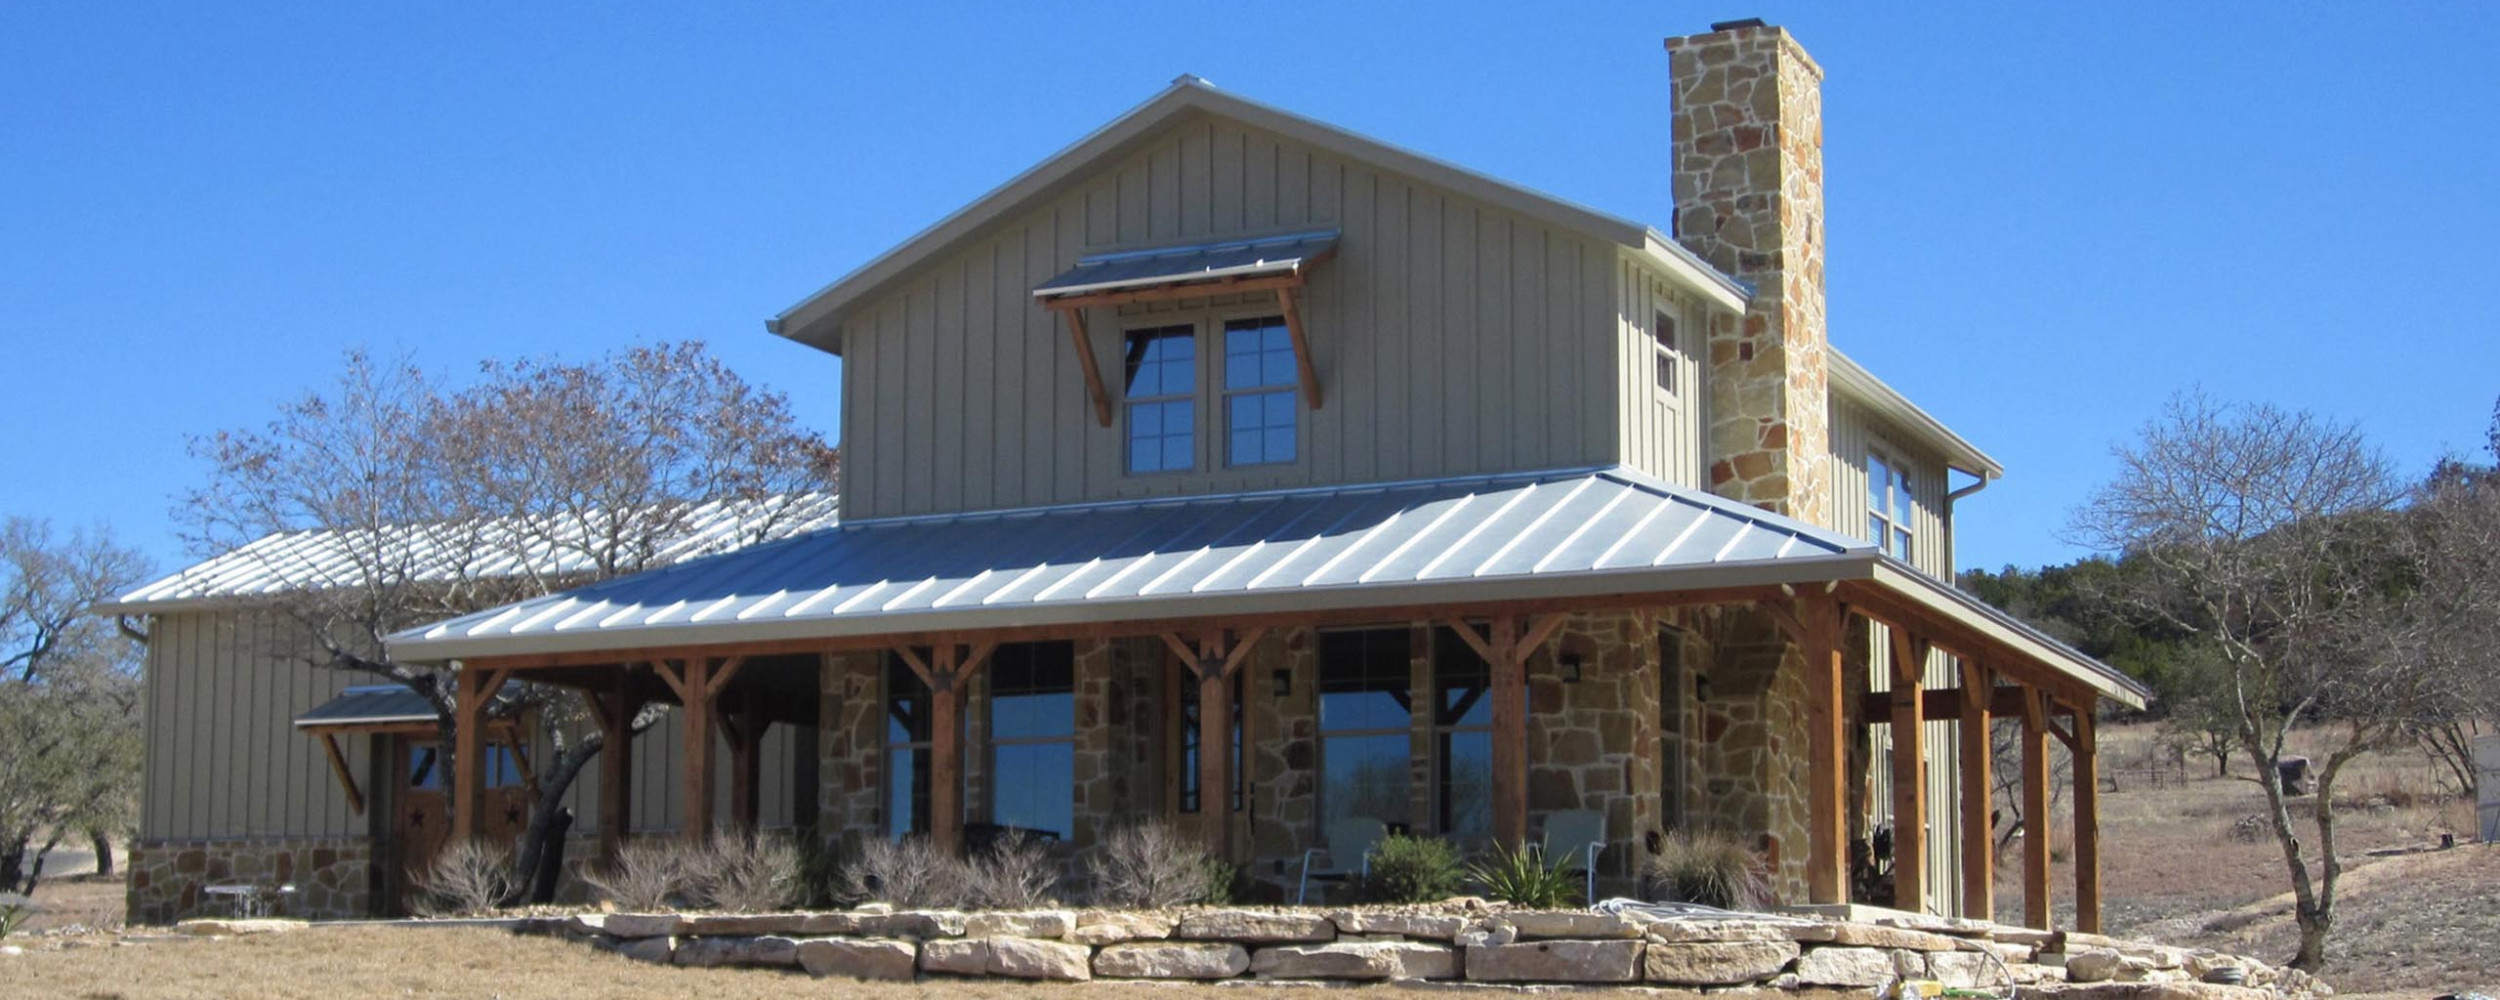 Welcome to Texas Home Plans, LLC - TX Hill Country's Award ... on drawing with a 2 car garage house plan, free cabin plan, blueprint construction house plan, free wooden chair plan, 40-60 house plan, free home plan, free barn plan, free duplex plan, square ranch house floor plan, free family reunion ideas, free farm plan, country ranch house floor plan, open ranch style home floor plan, free blueprints, ranch style house plans with open floor plan, simple ranch house plan,